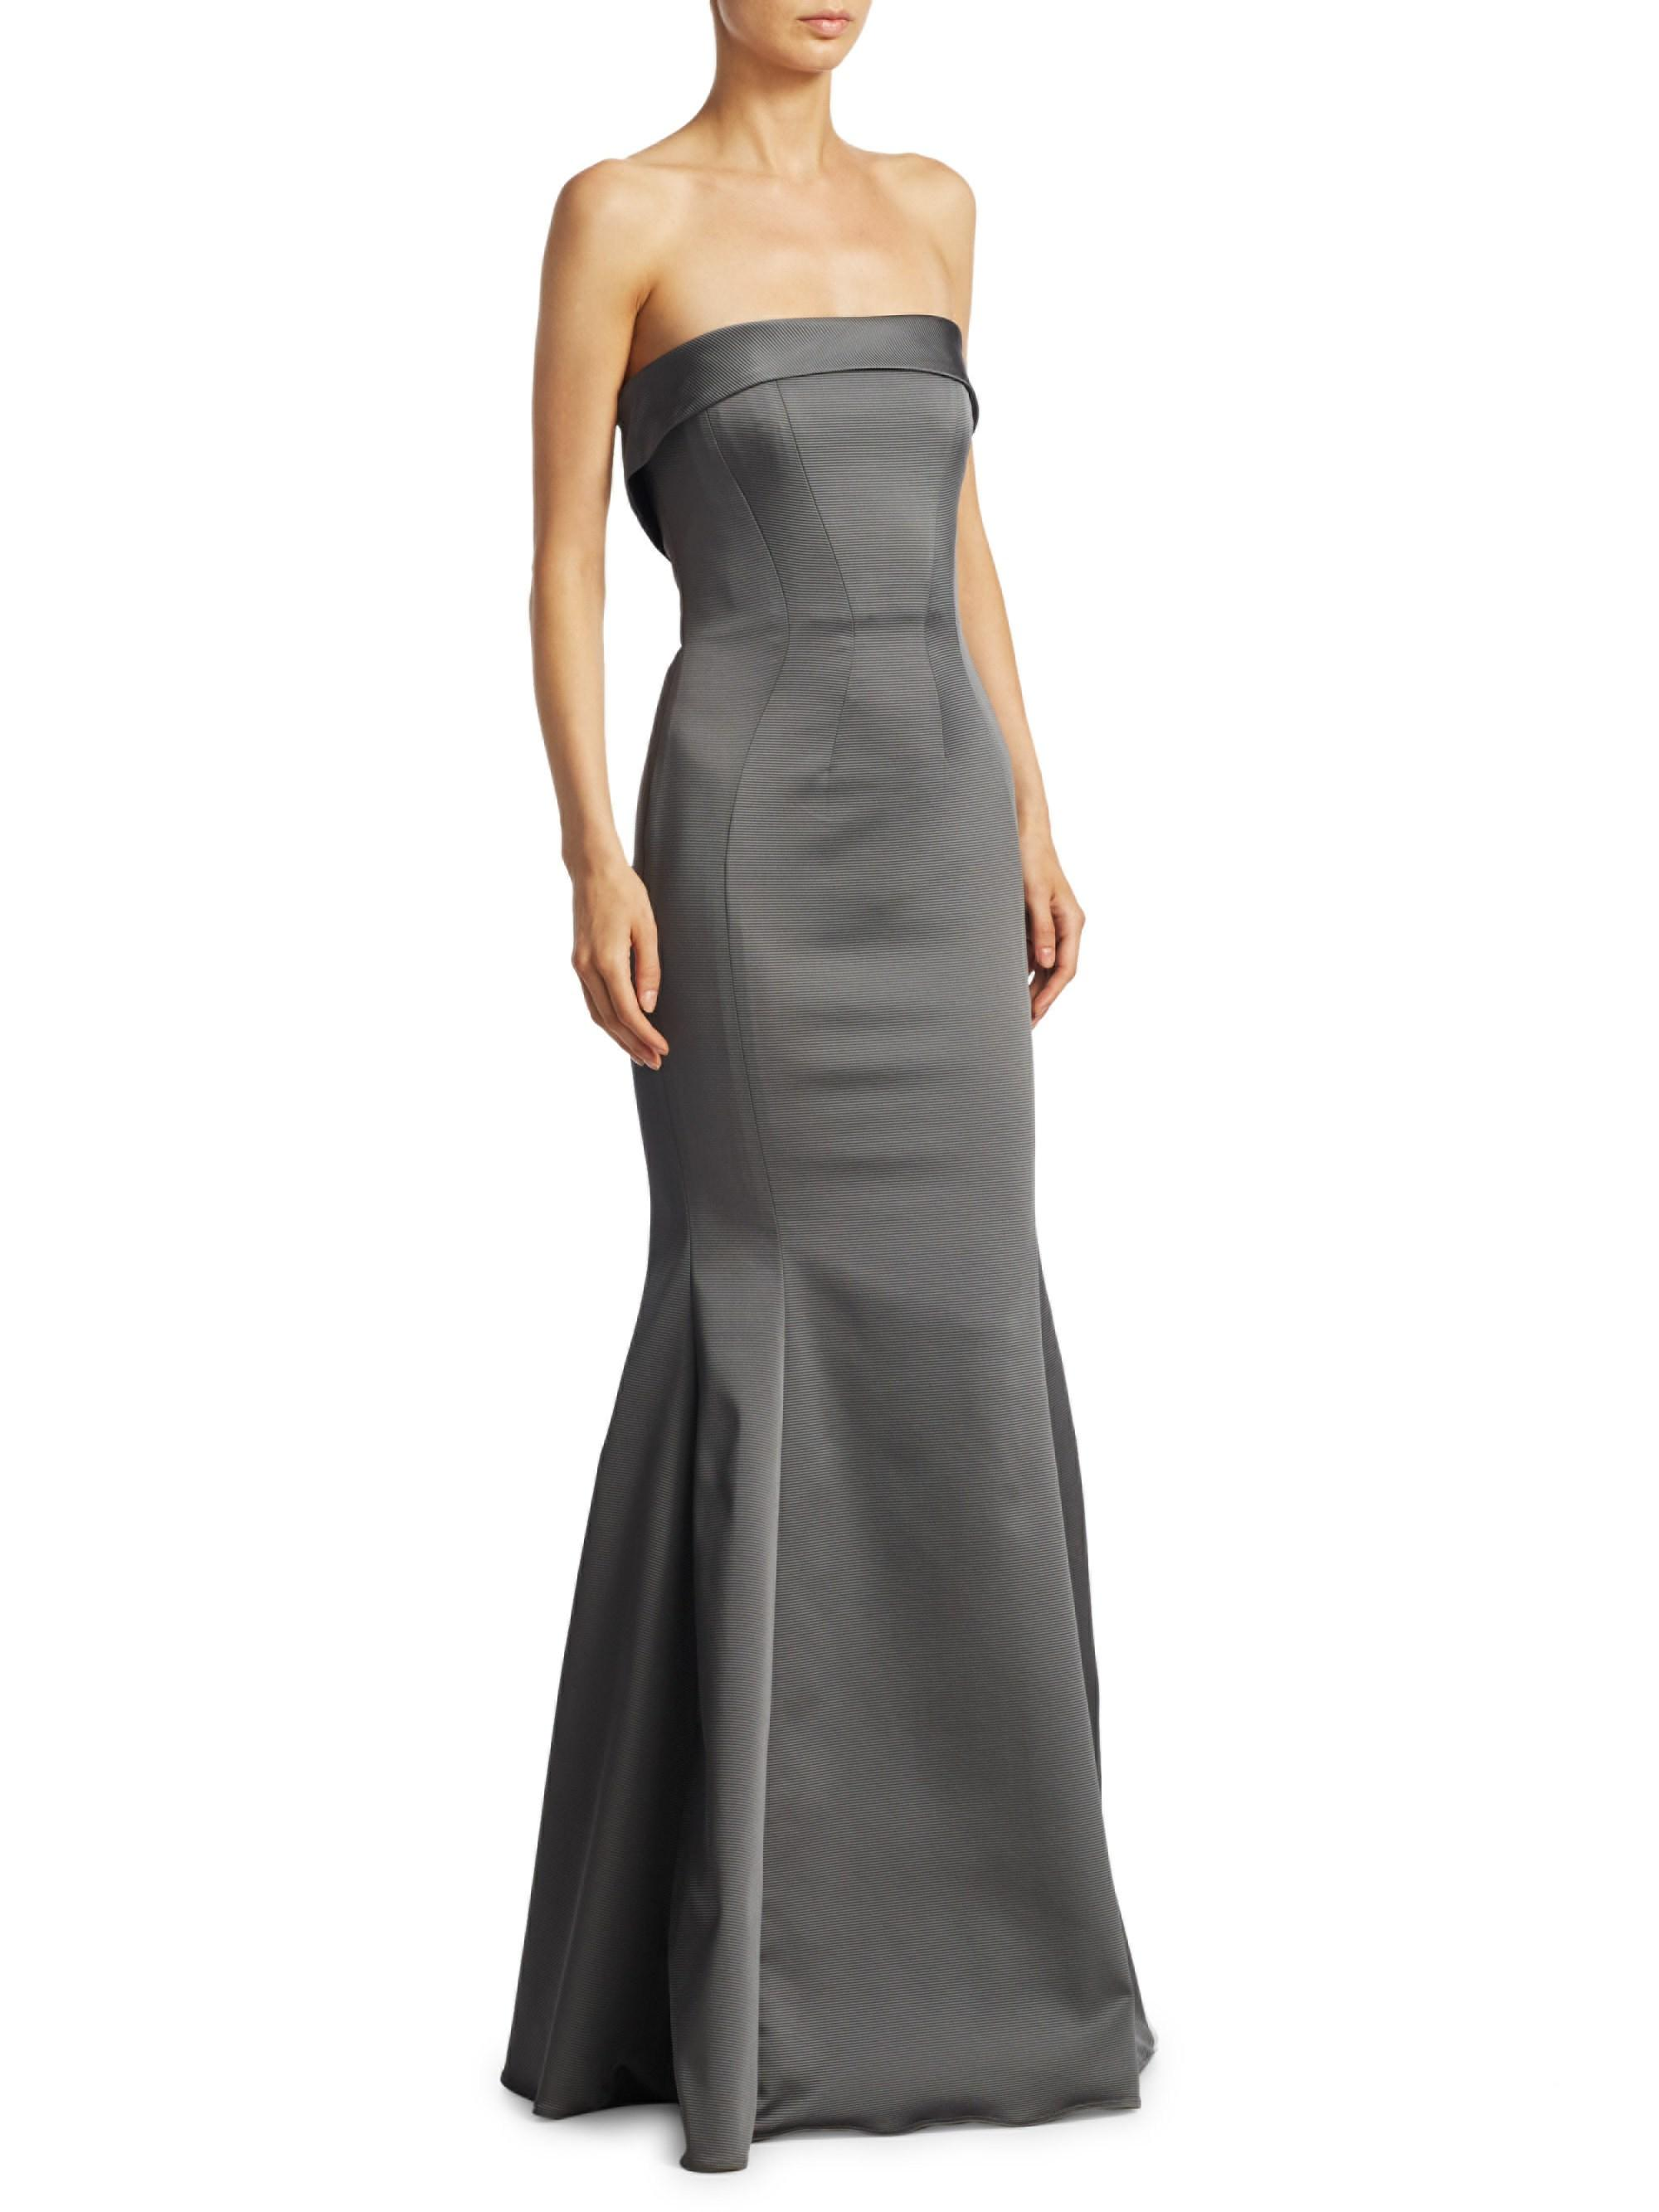 b9c305422c71 Lyst - Zac Zac Posen Women's Stretch Faille Mermaid Gown - Grey ...